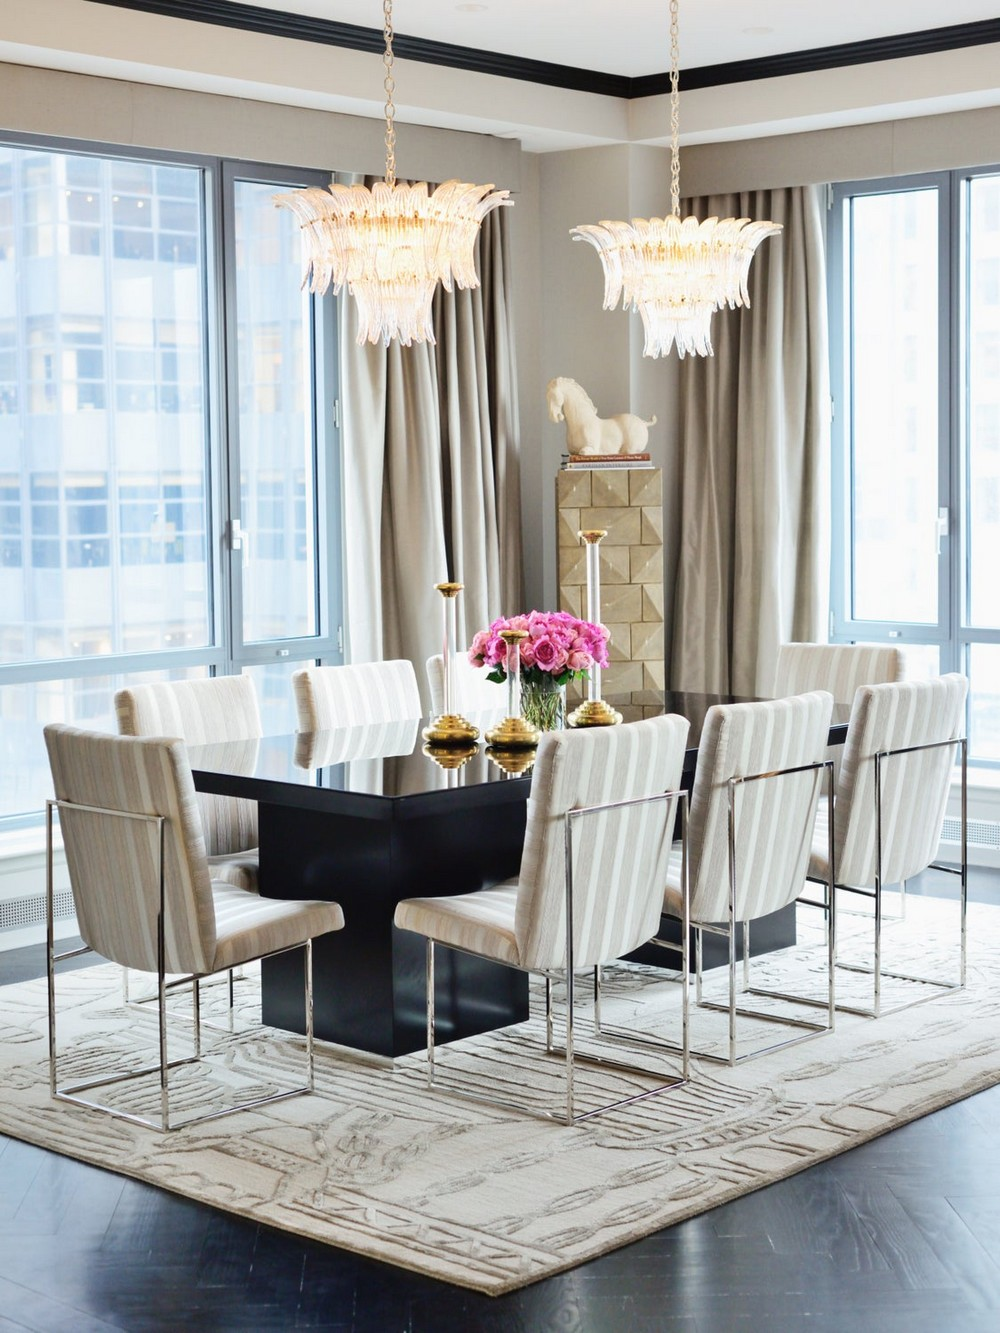 Luxury, Old-world Romance and Urban Cool: Dining Rooms by Ryan Korban ryan korban Luxury, Old-world Romance and Urban Cool: Dining Rooms by Ryan Korban 1 1stDibs